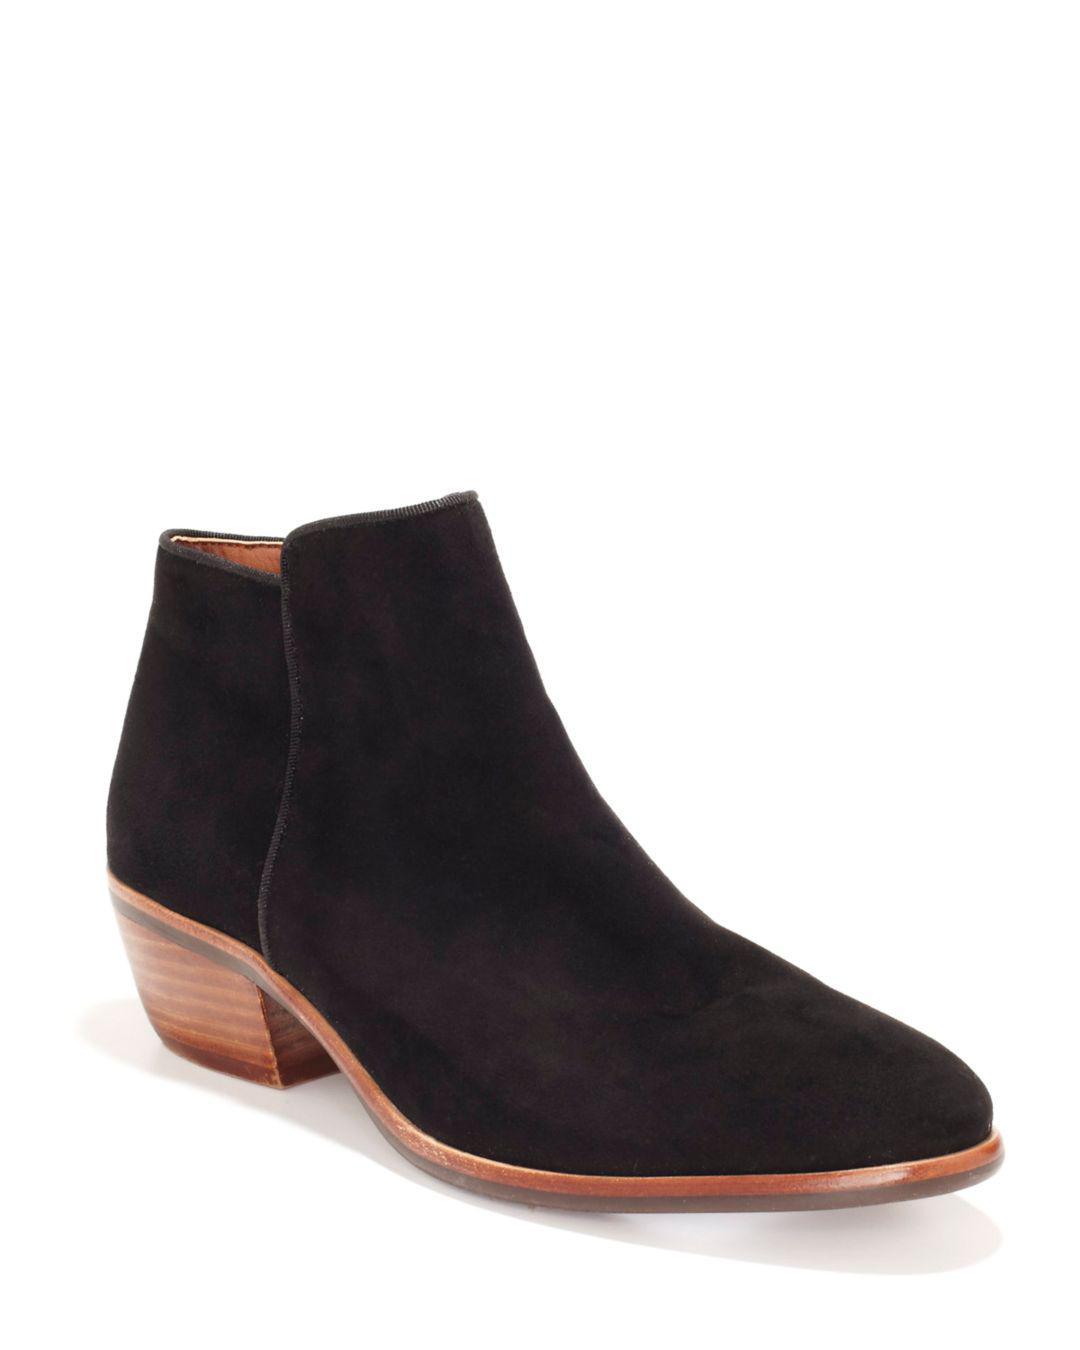 72ea52a5257b77 Sam Edelman Petty Ankle Boots in Black - Lyst